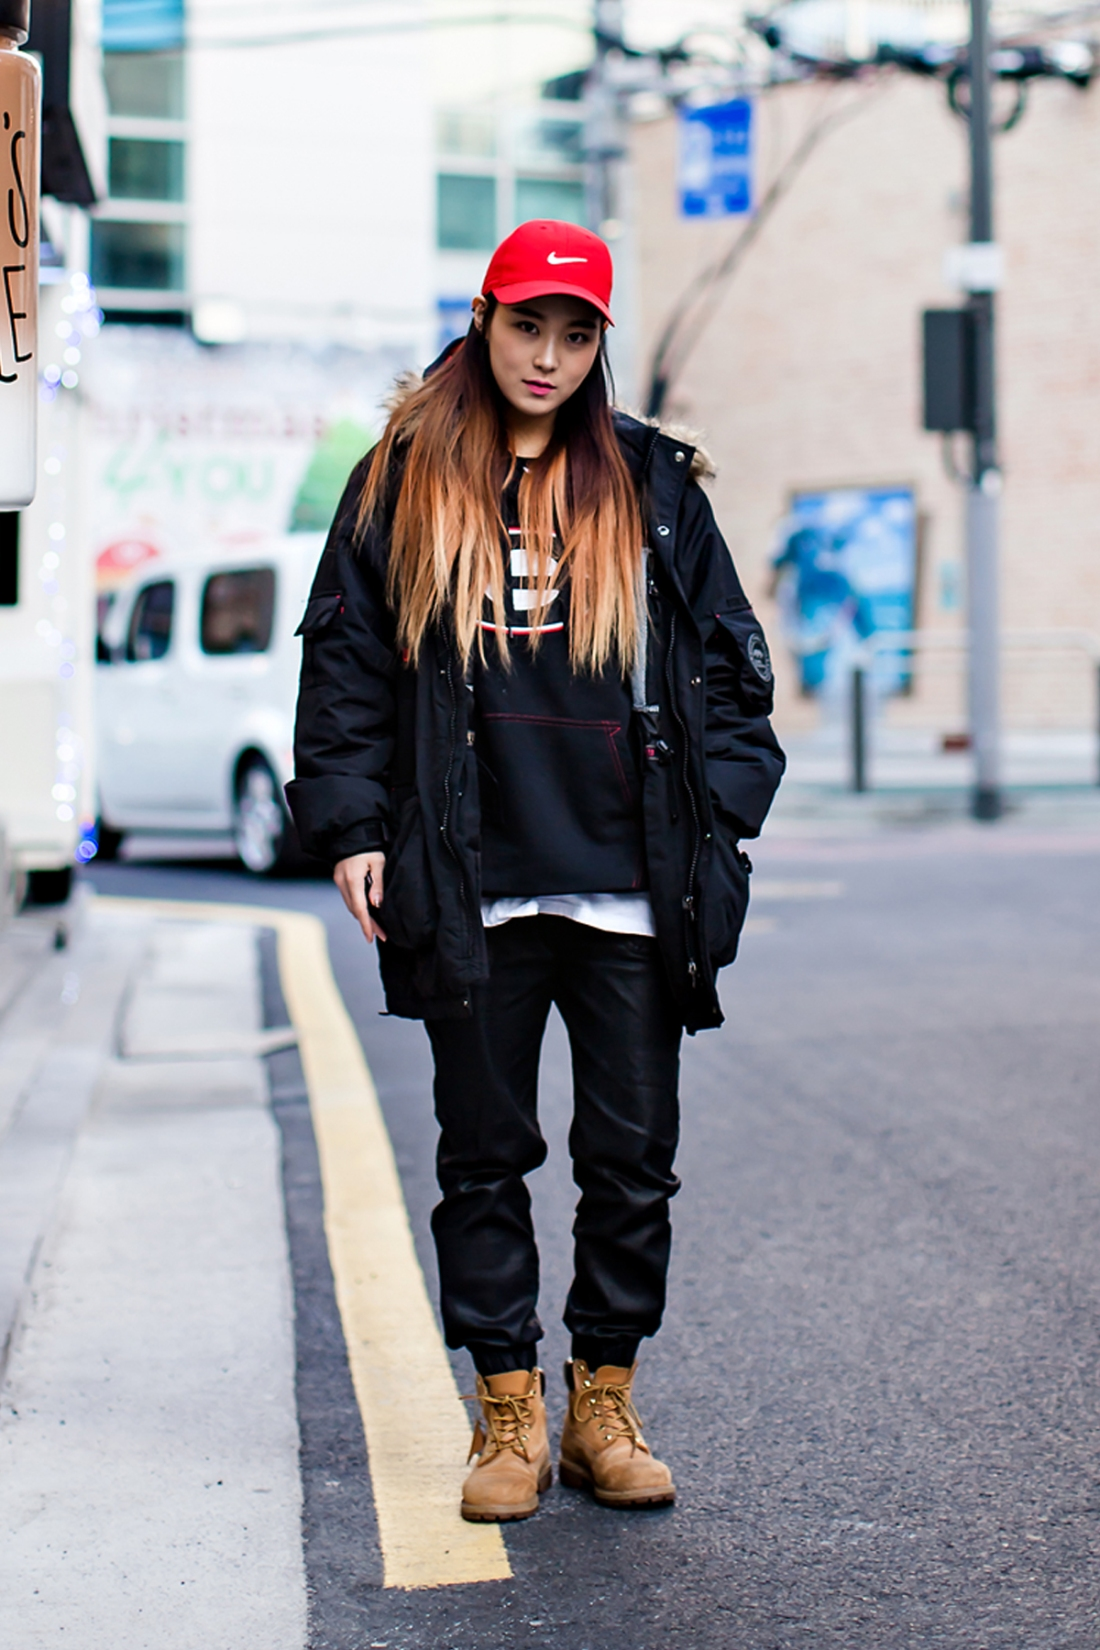 On the street… Kim Bora Seoul